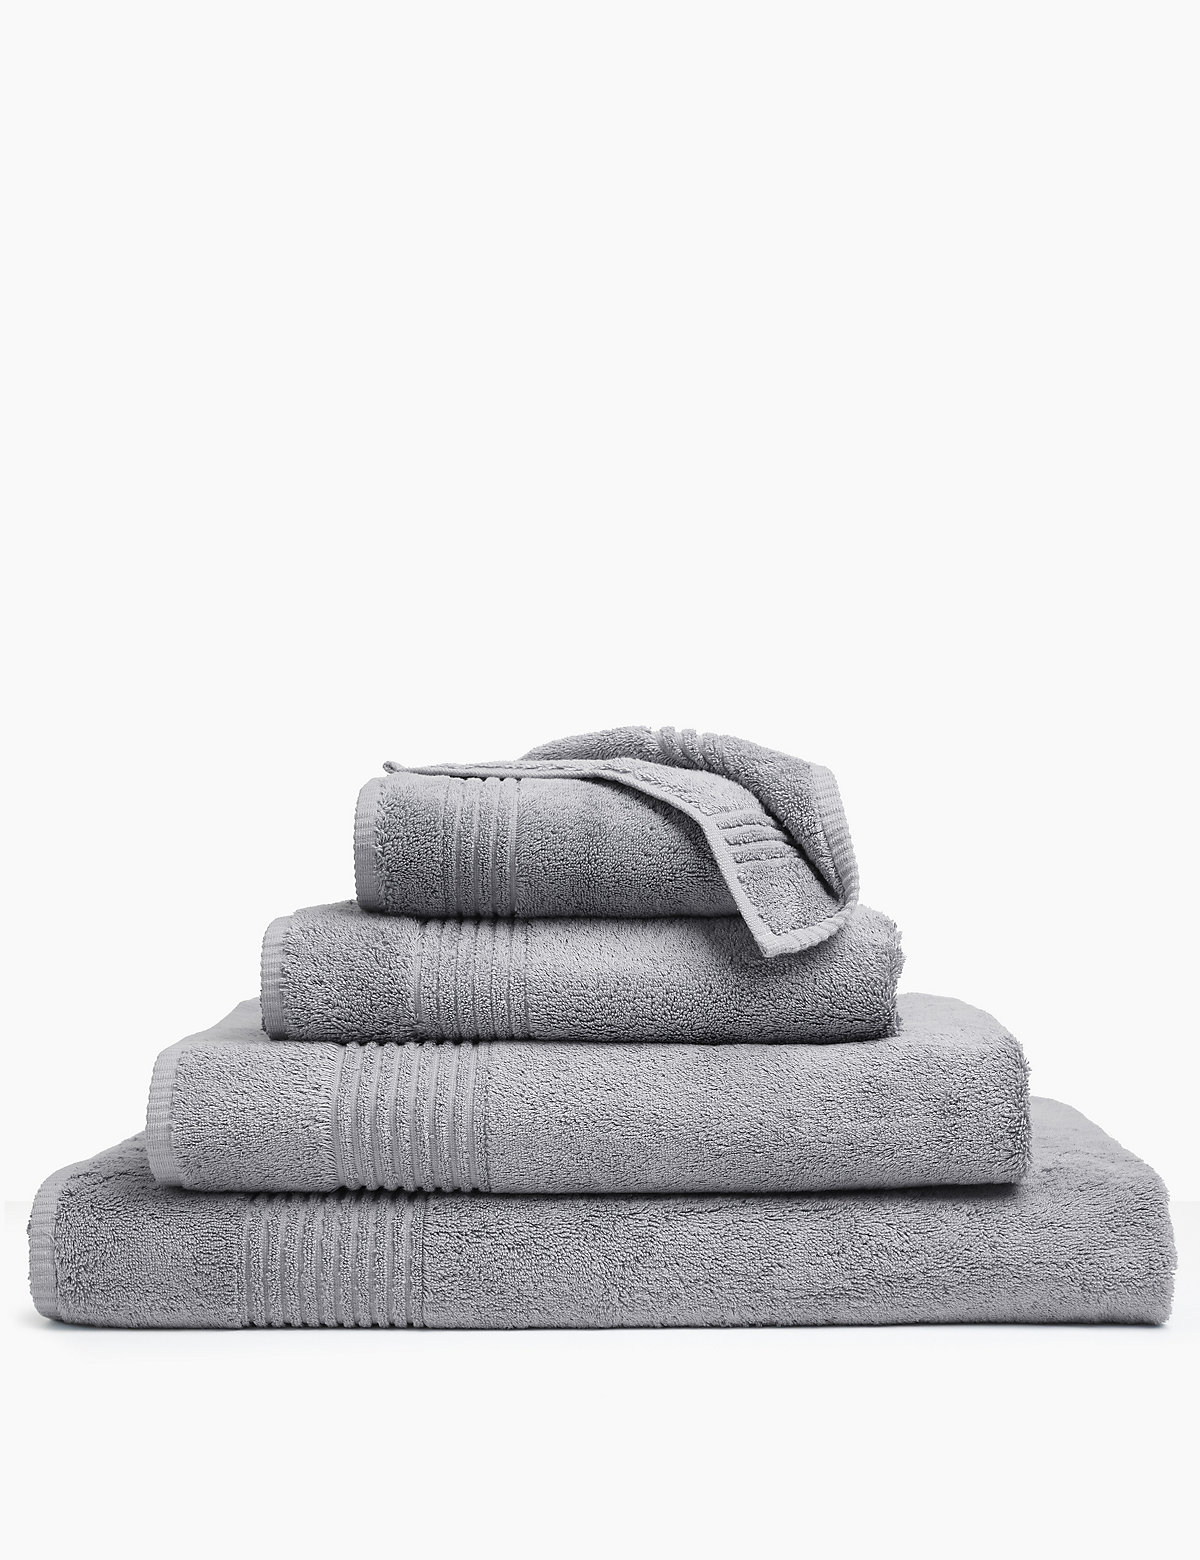 20 off homeware offers ms luxury egyptian cotton towel falaconquin